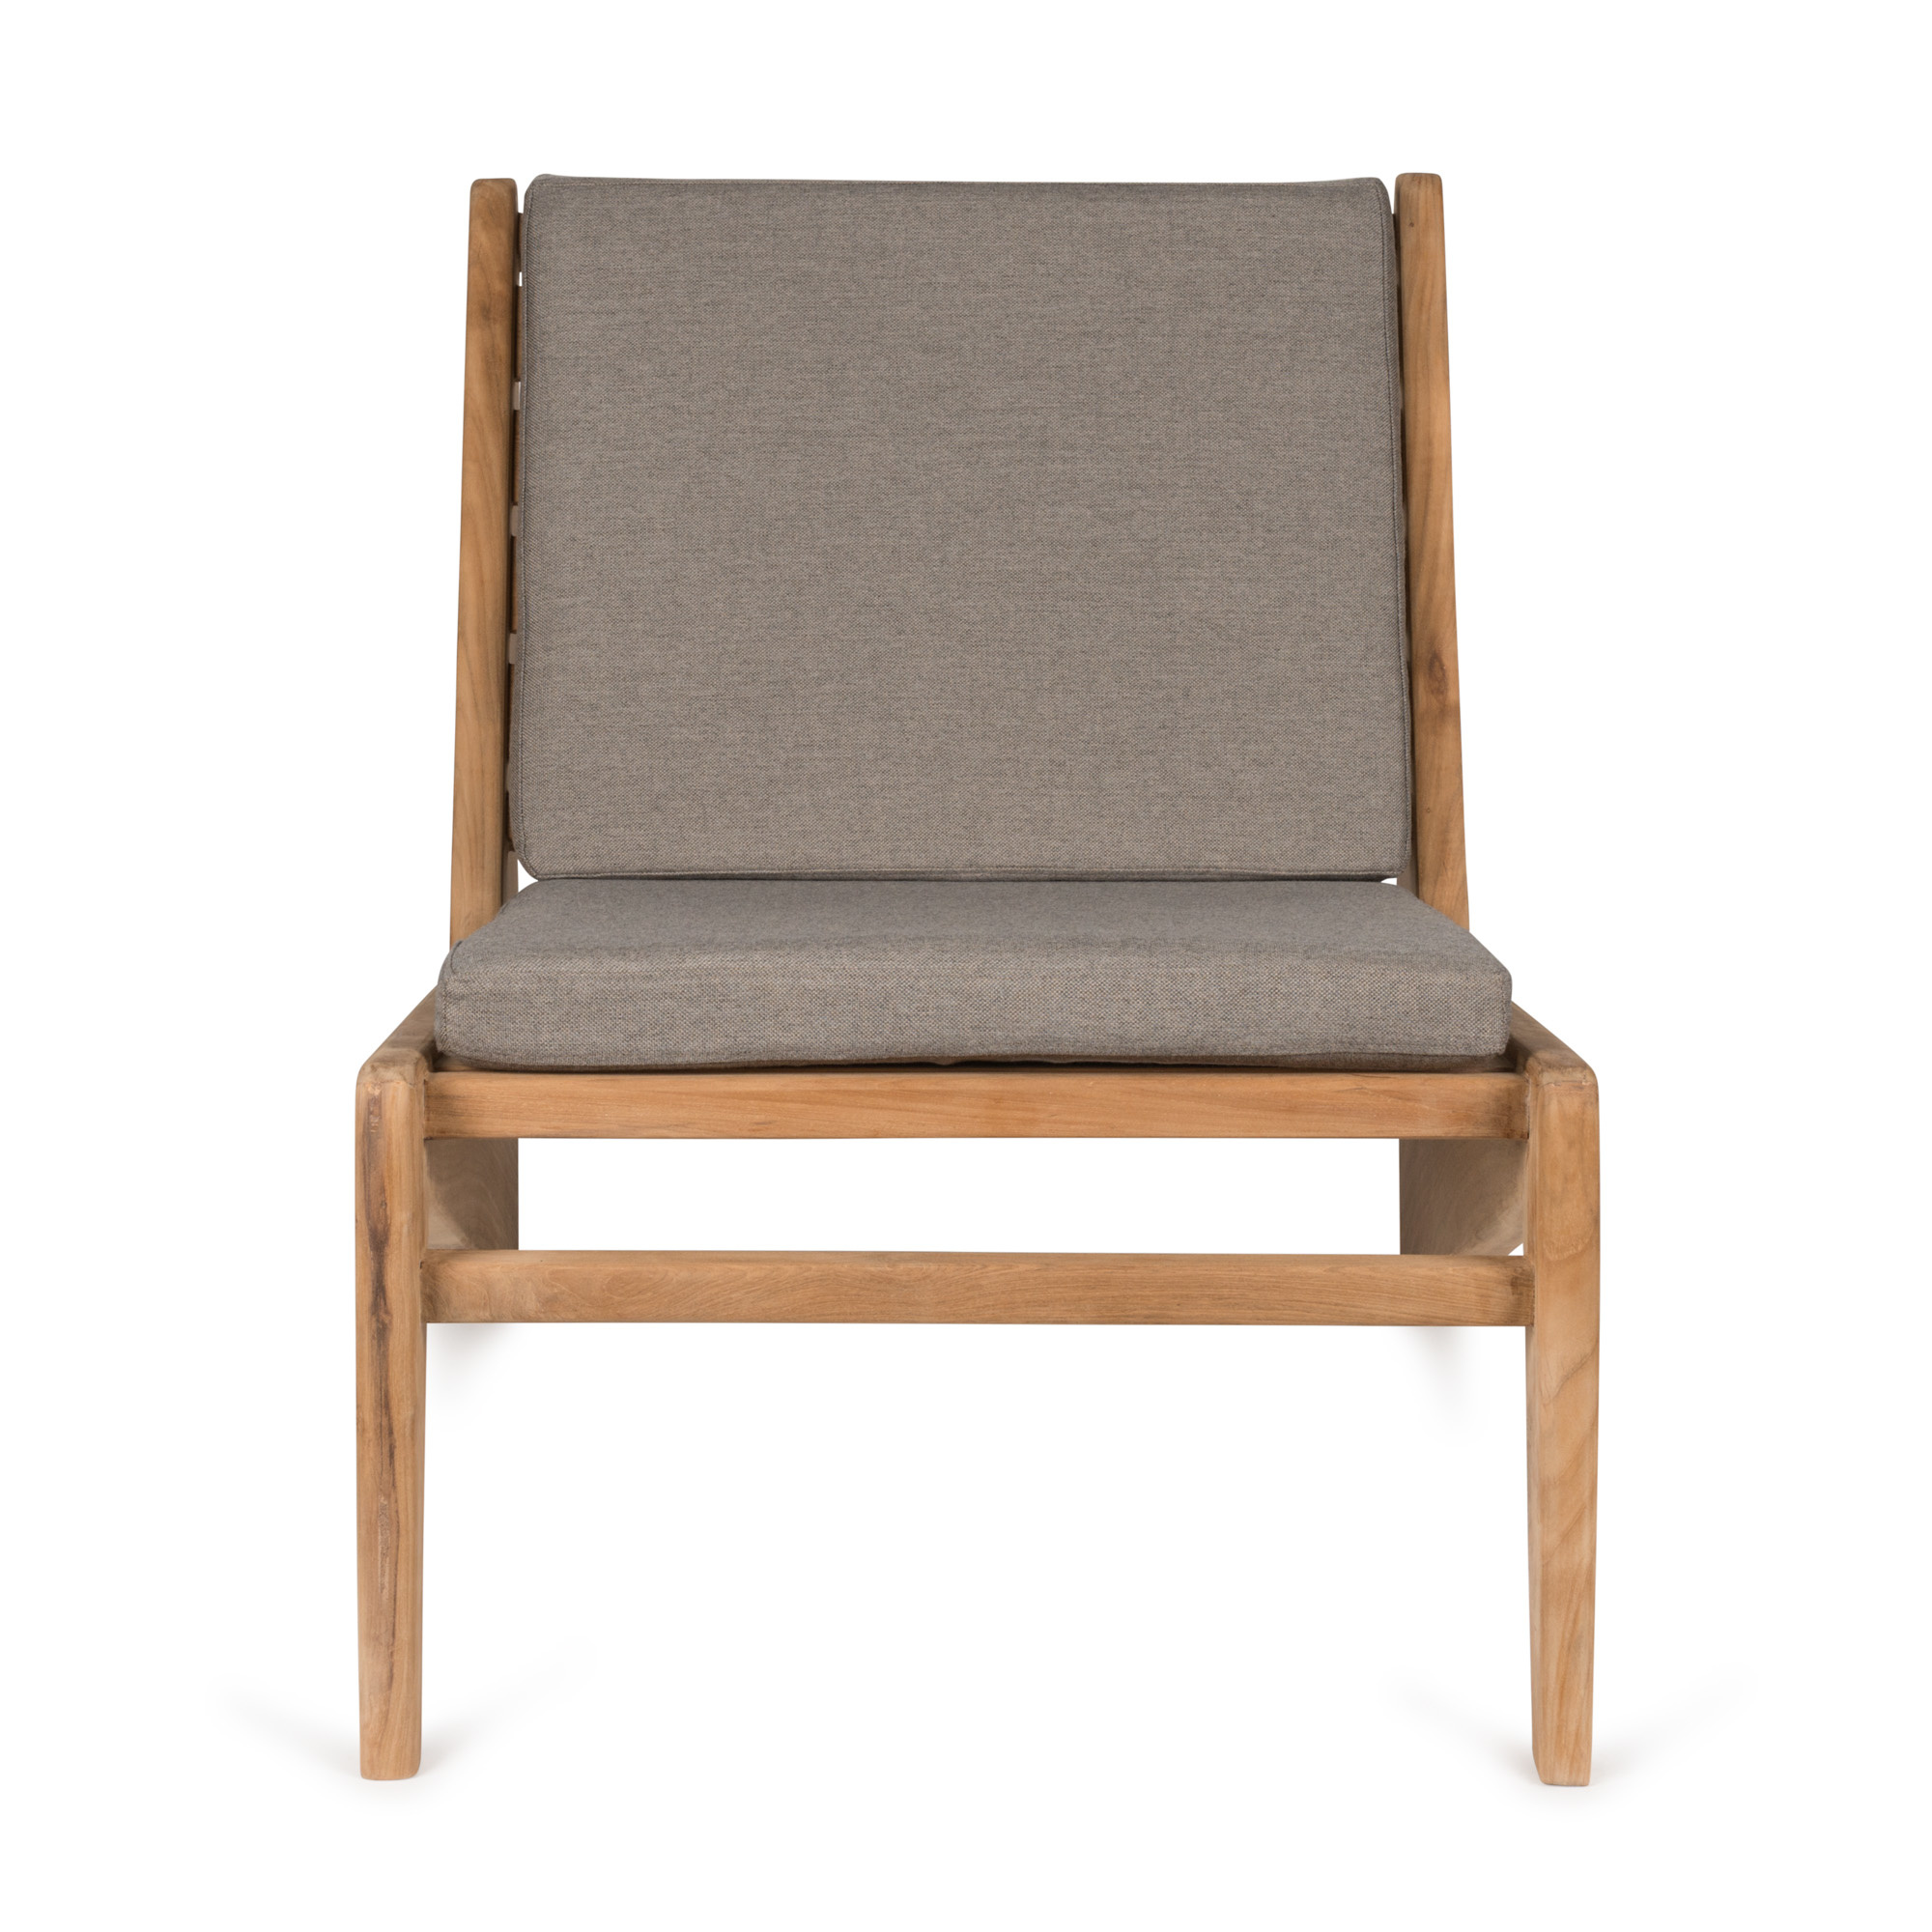 Kangaroo Chair - Teak Outdoor with Cushion-3